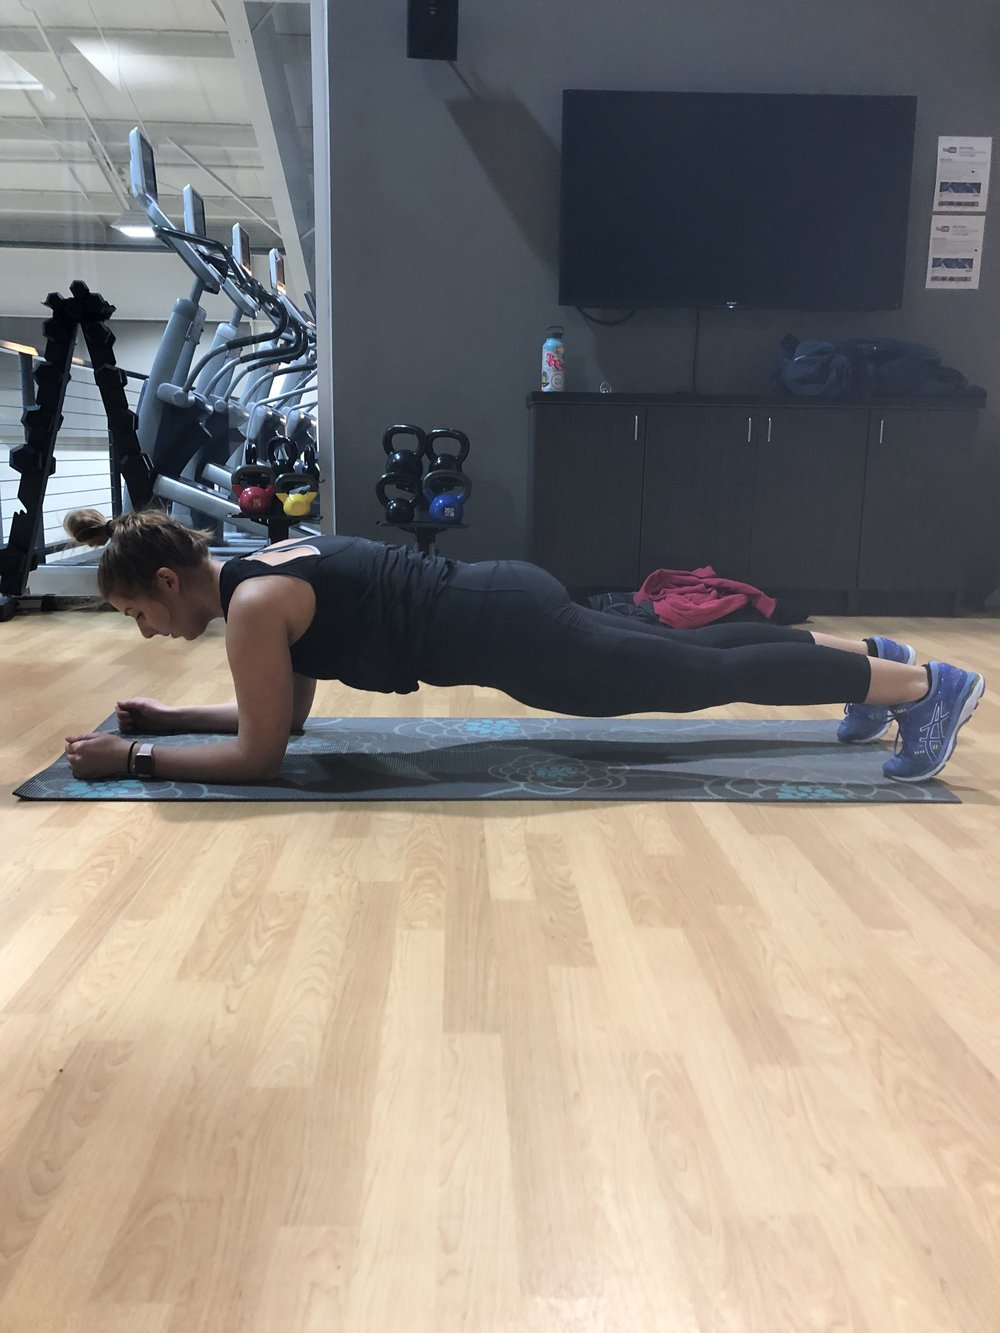 UP-DOWN PLANKS: Starting position